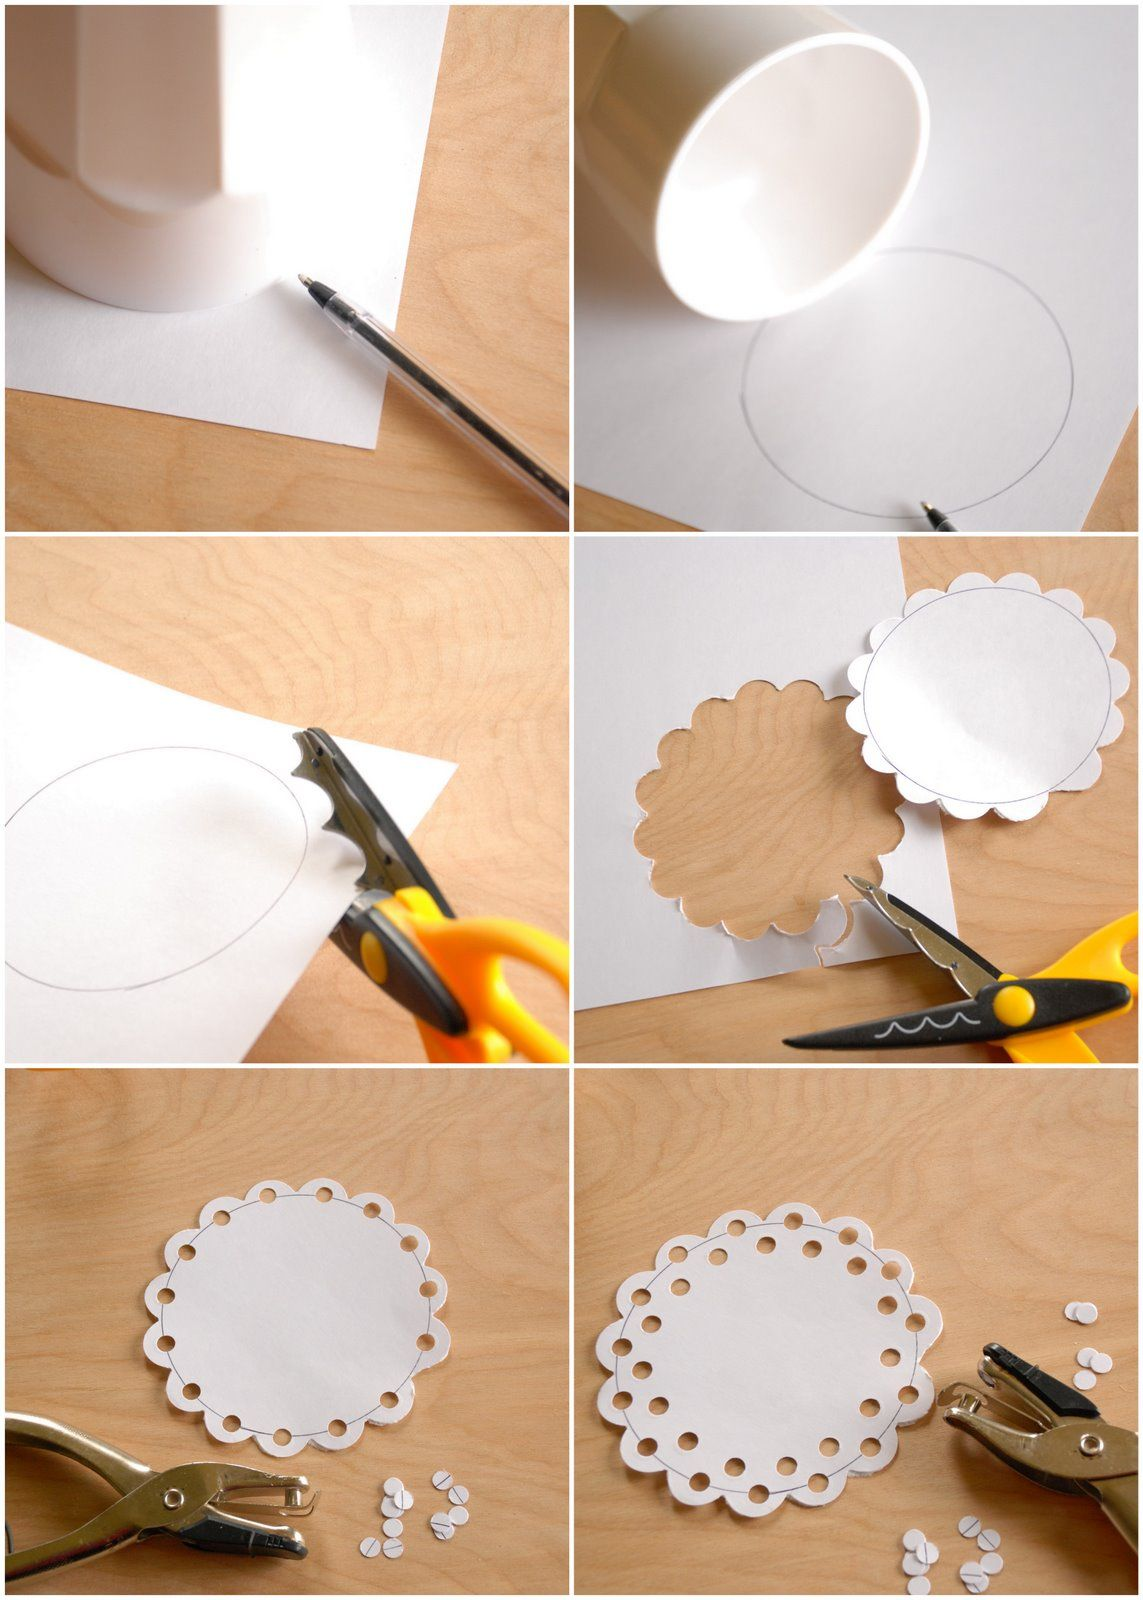 Diy Paper Doily If You Have A Scallop Punch Can Eliminate The